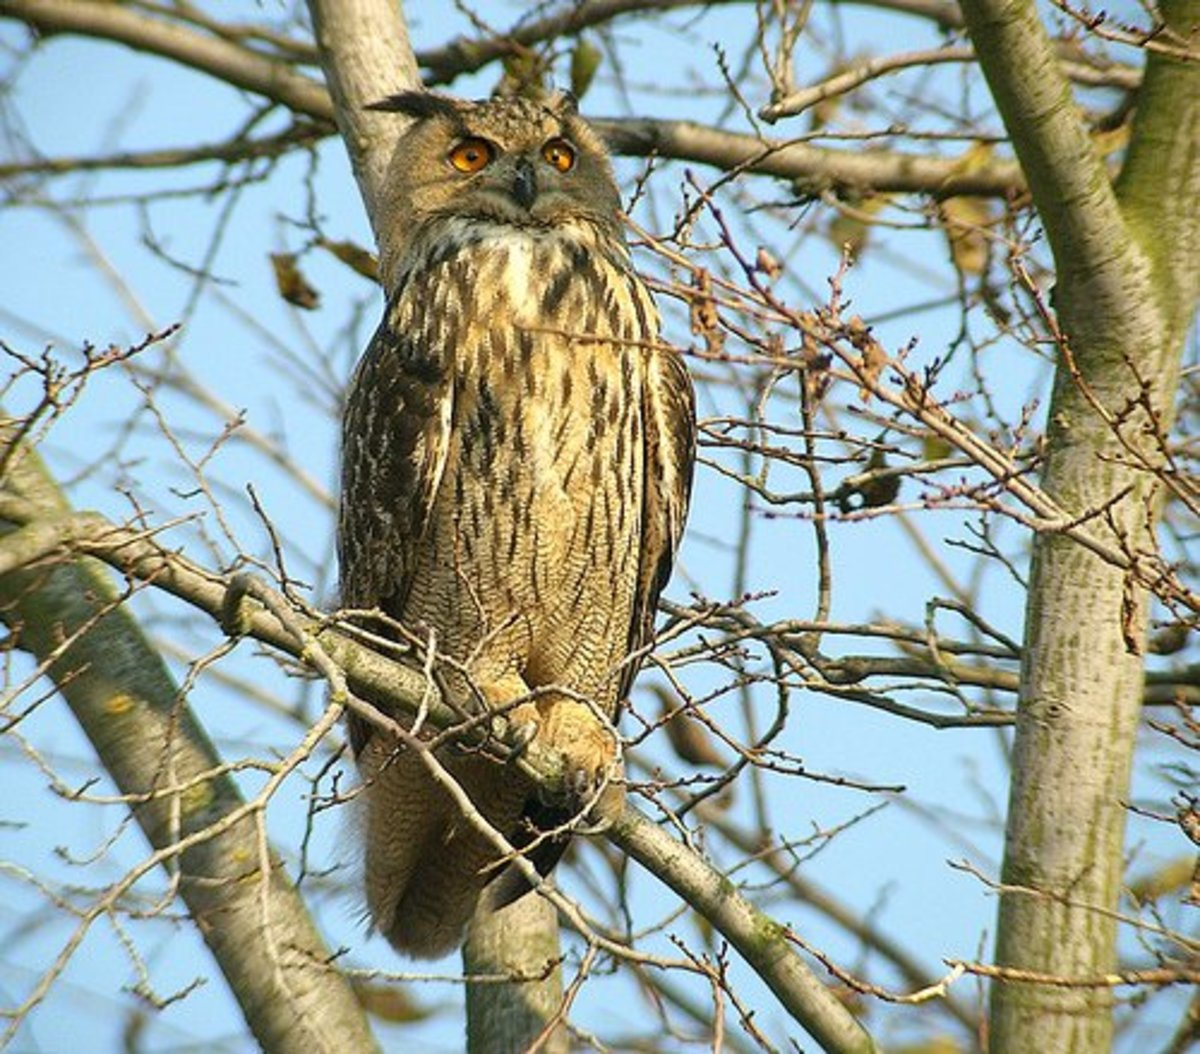 The Eurasian Eagle owl is the largest of the many owl species.